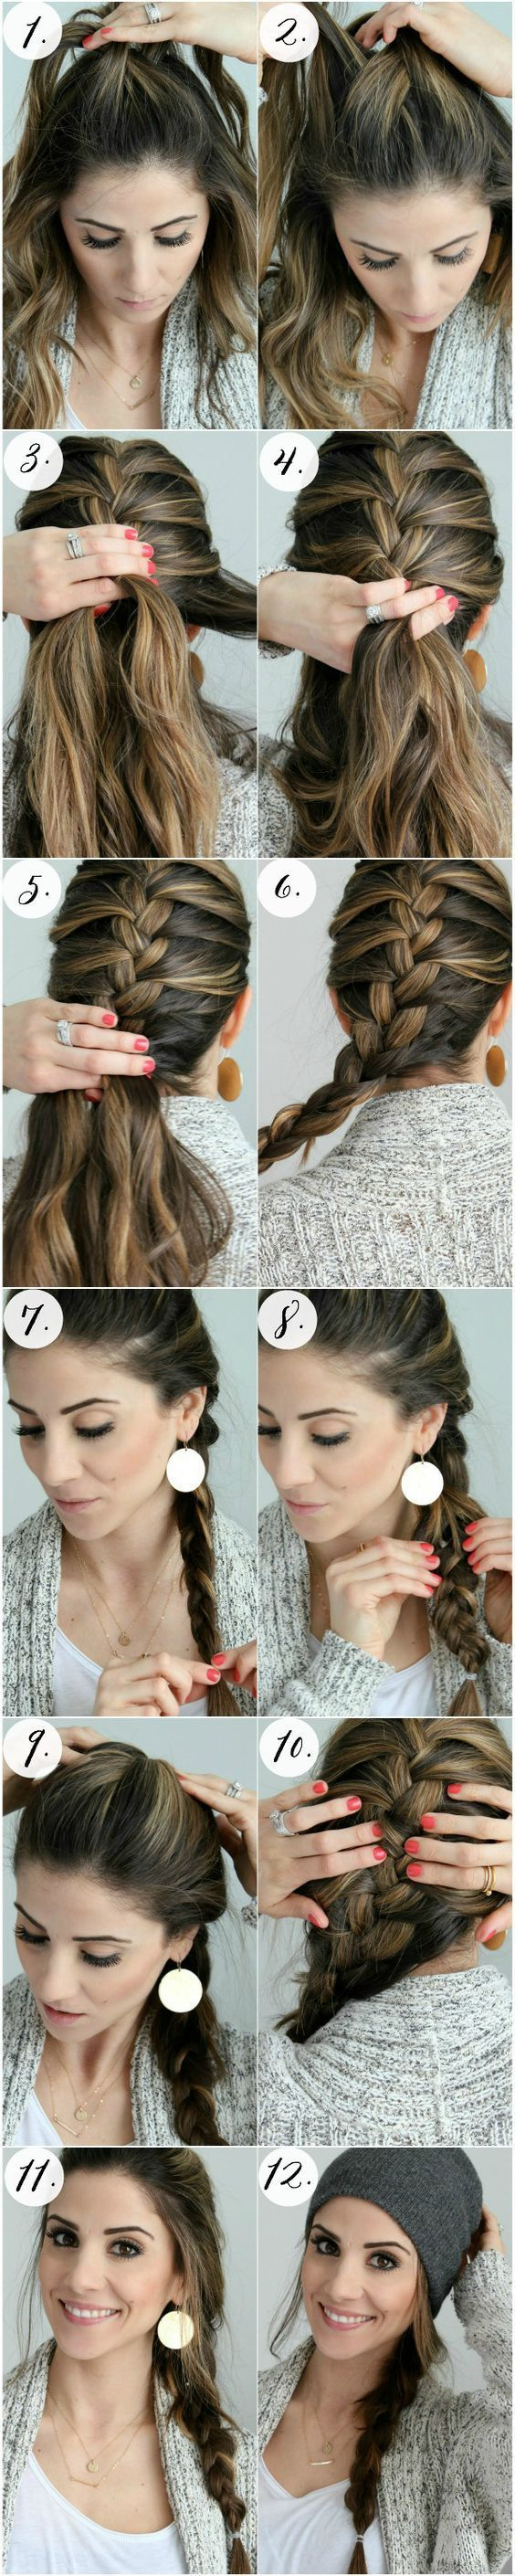 Best 25+ Braided crown hairstyles ideas on Pinterest ...